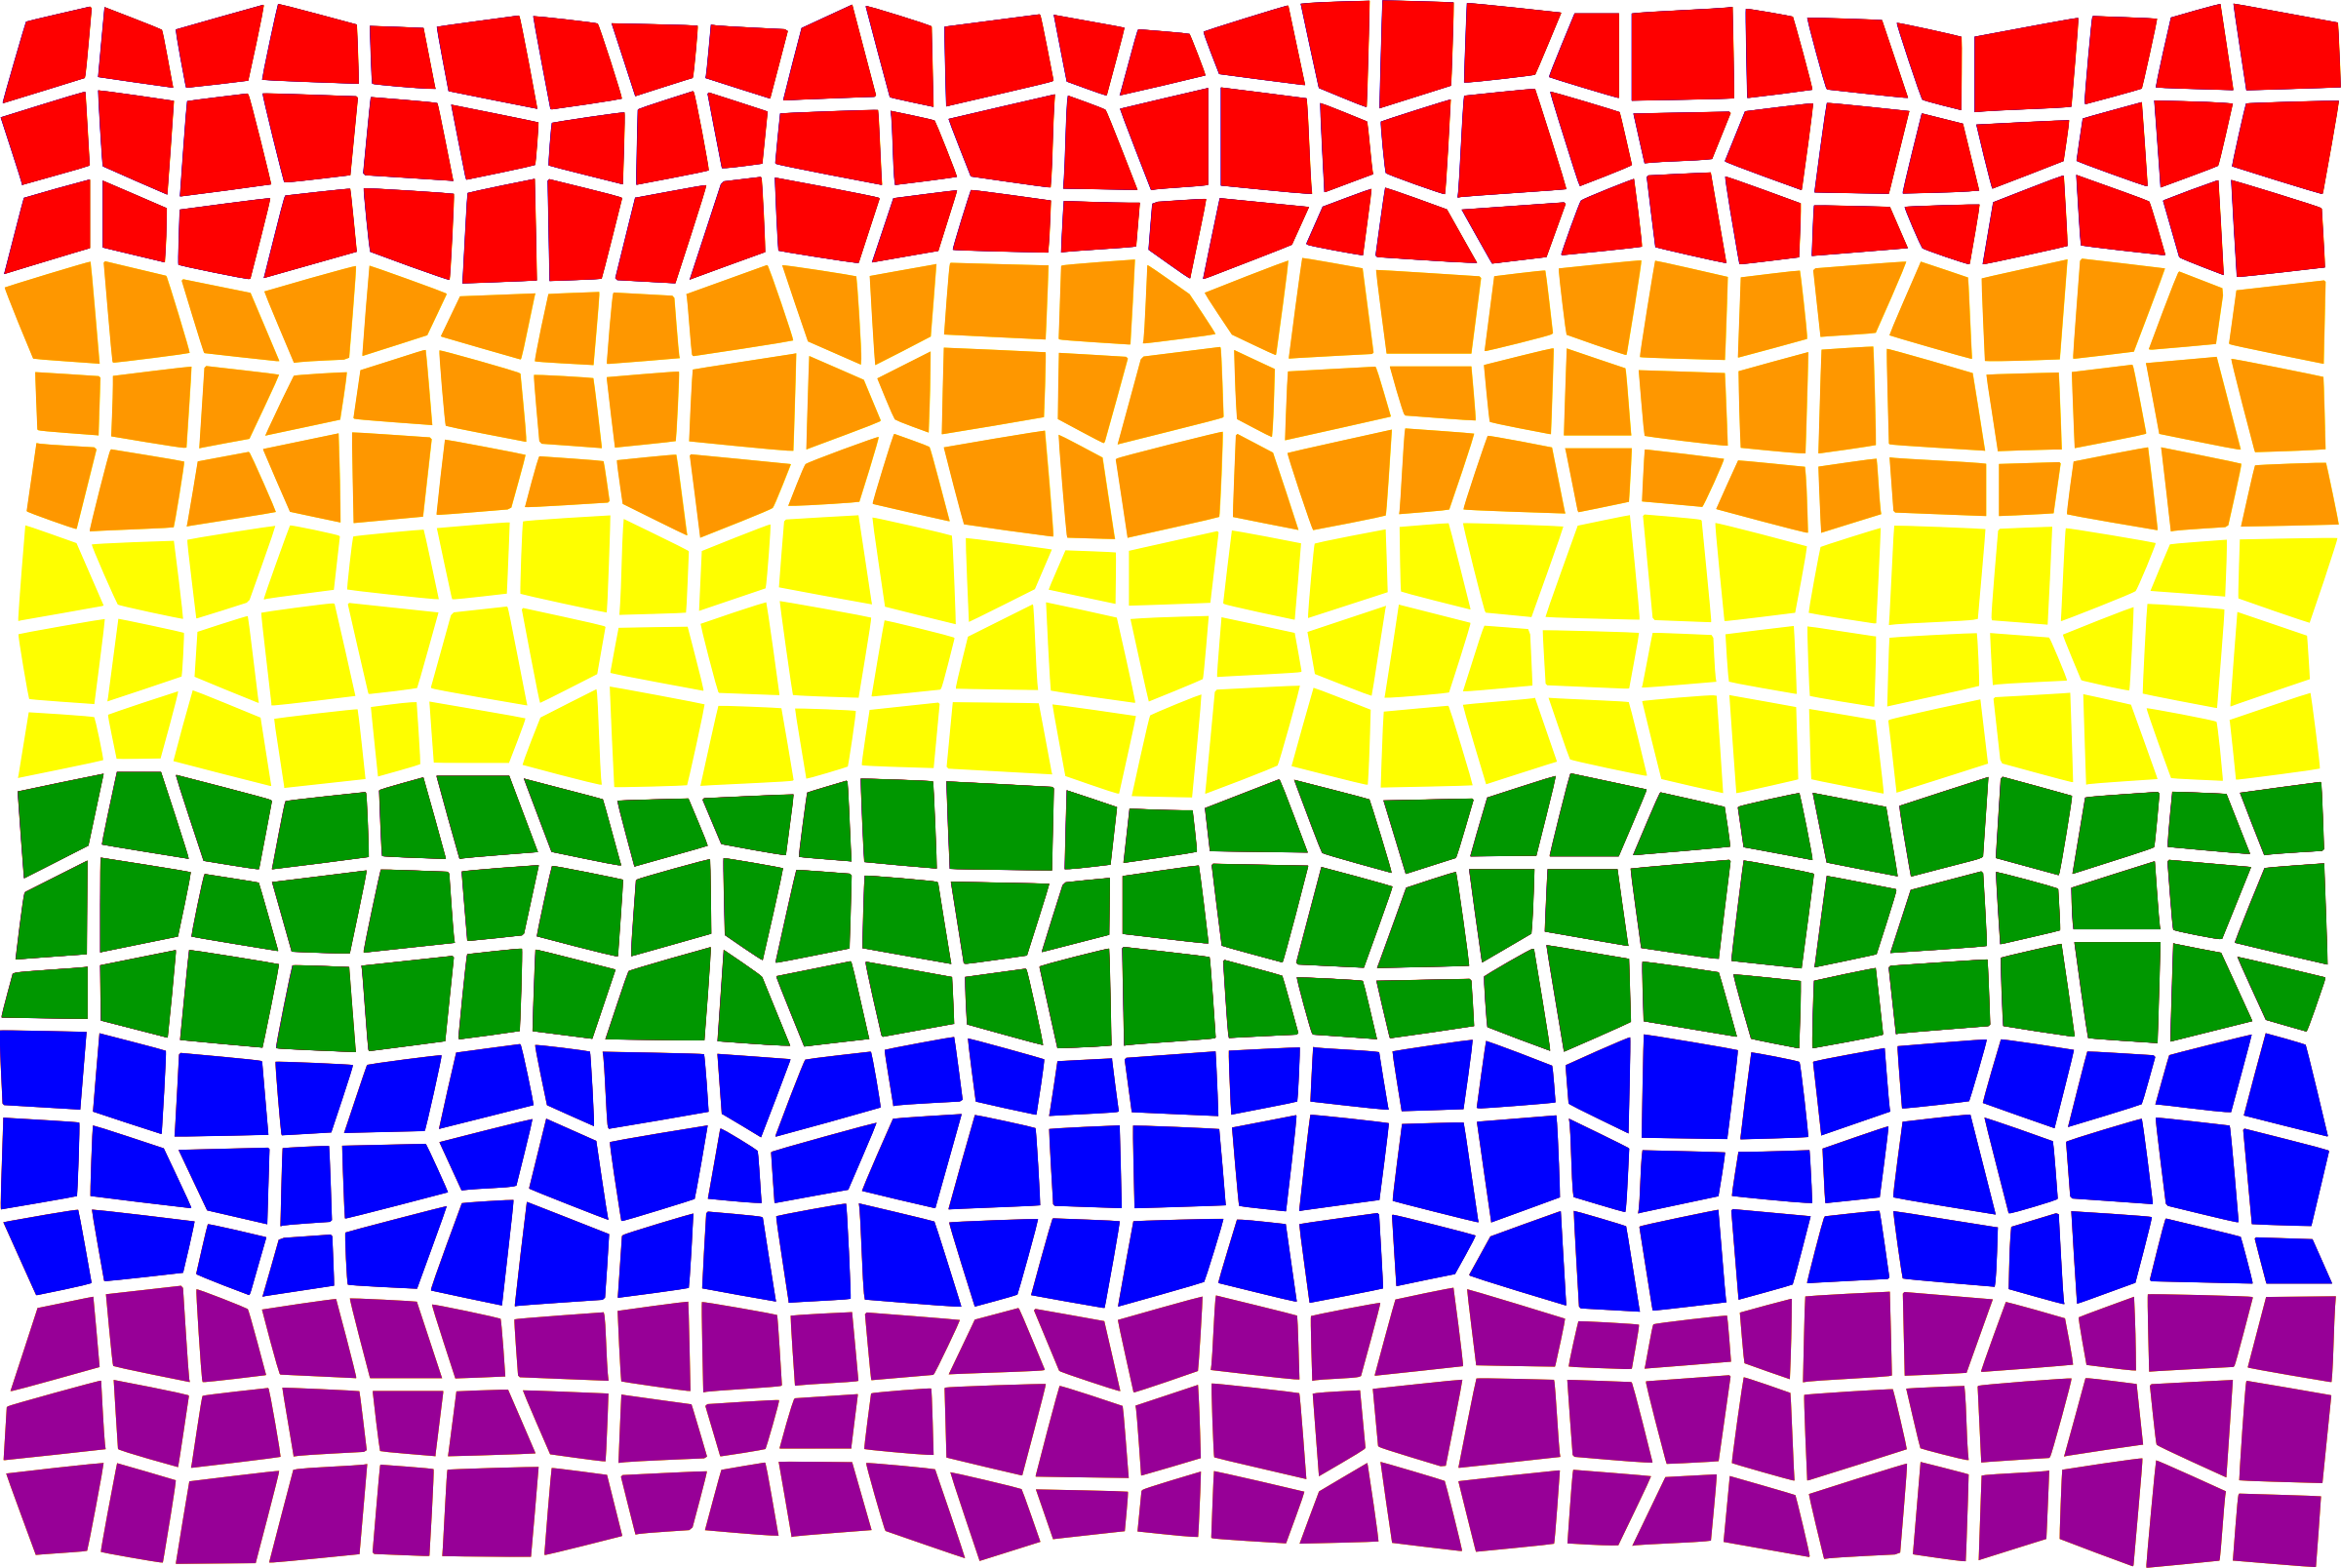 Rainbow flag mosaic by Firkin